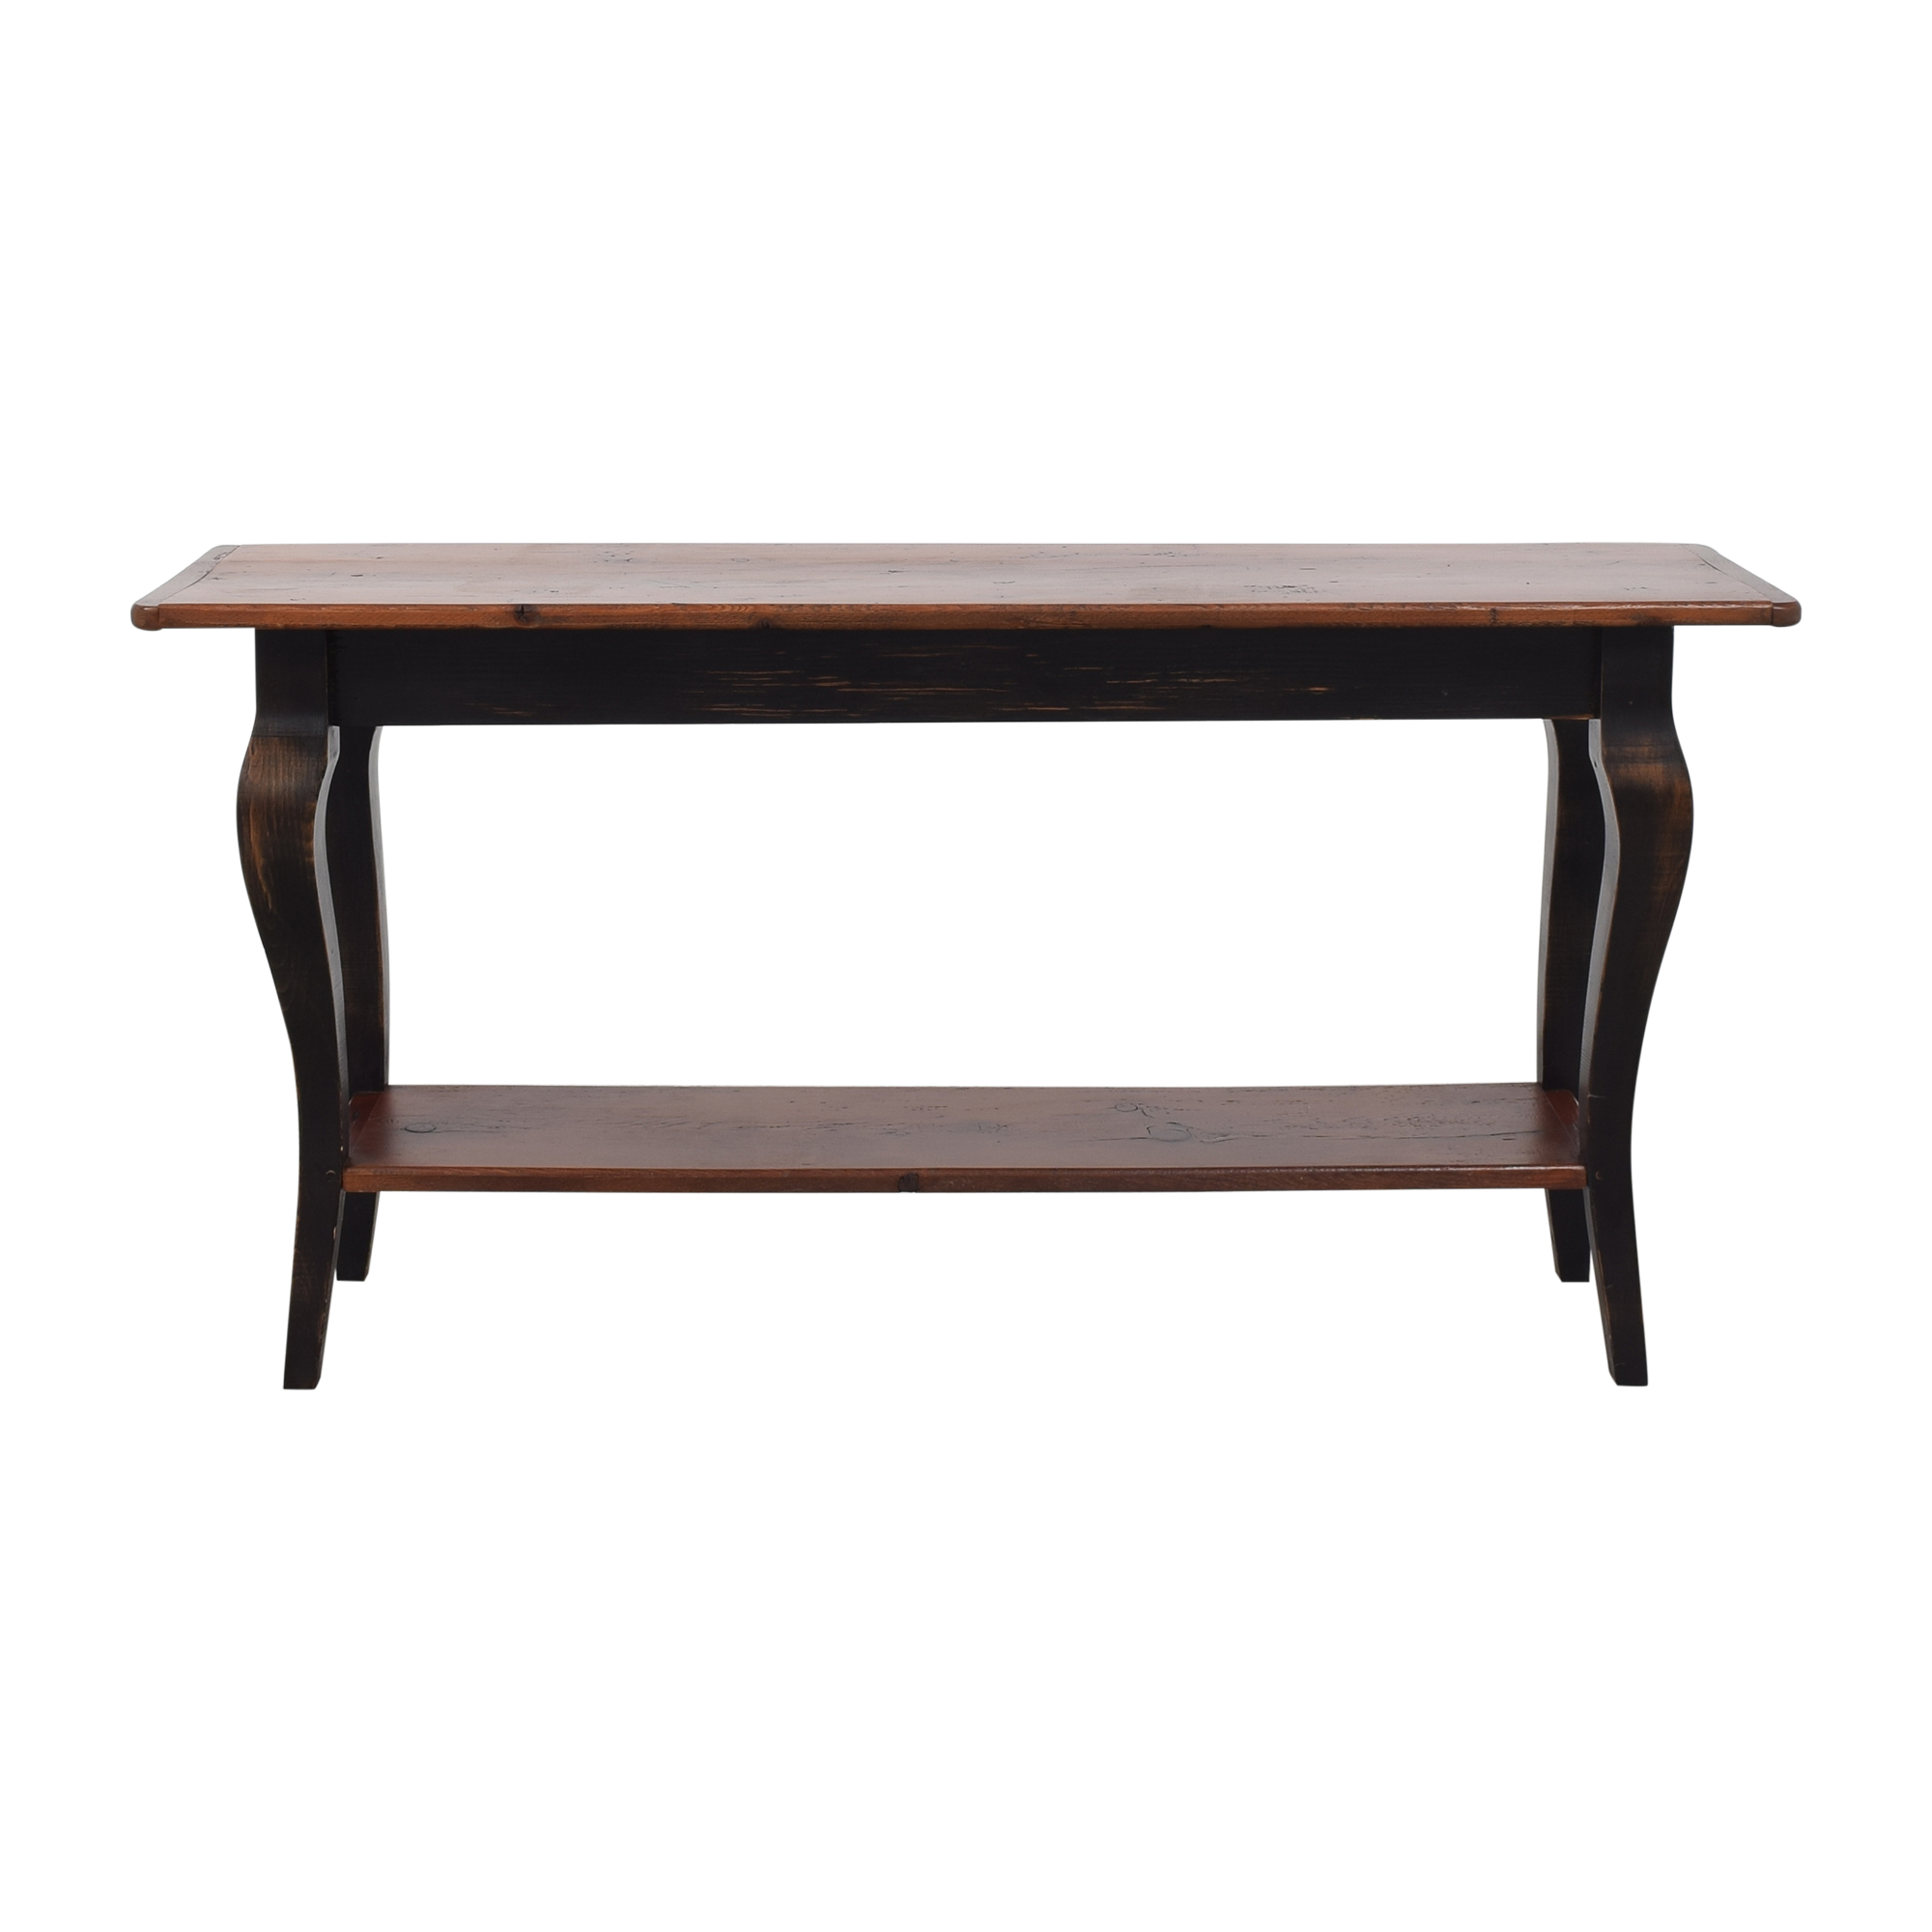 Vintage-Style Console Table